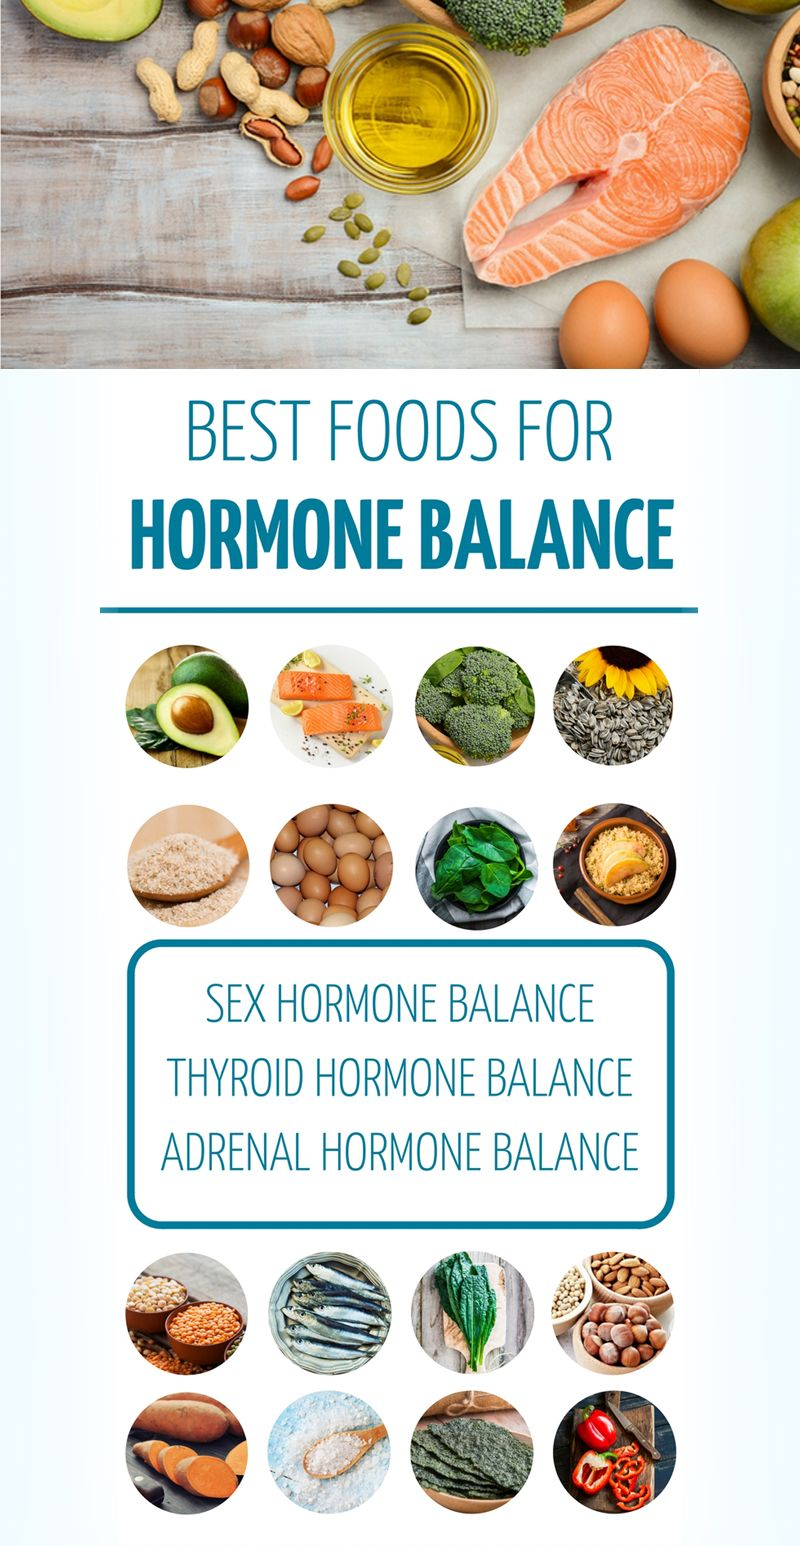 12 Foods To Add To Your Diet For A Healthy Endocrine System Foods To Balance Hormones Hormone Balancing Hormone Imbalance